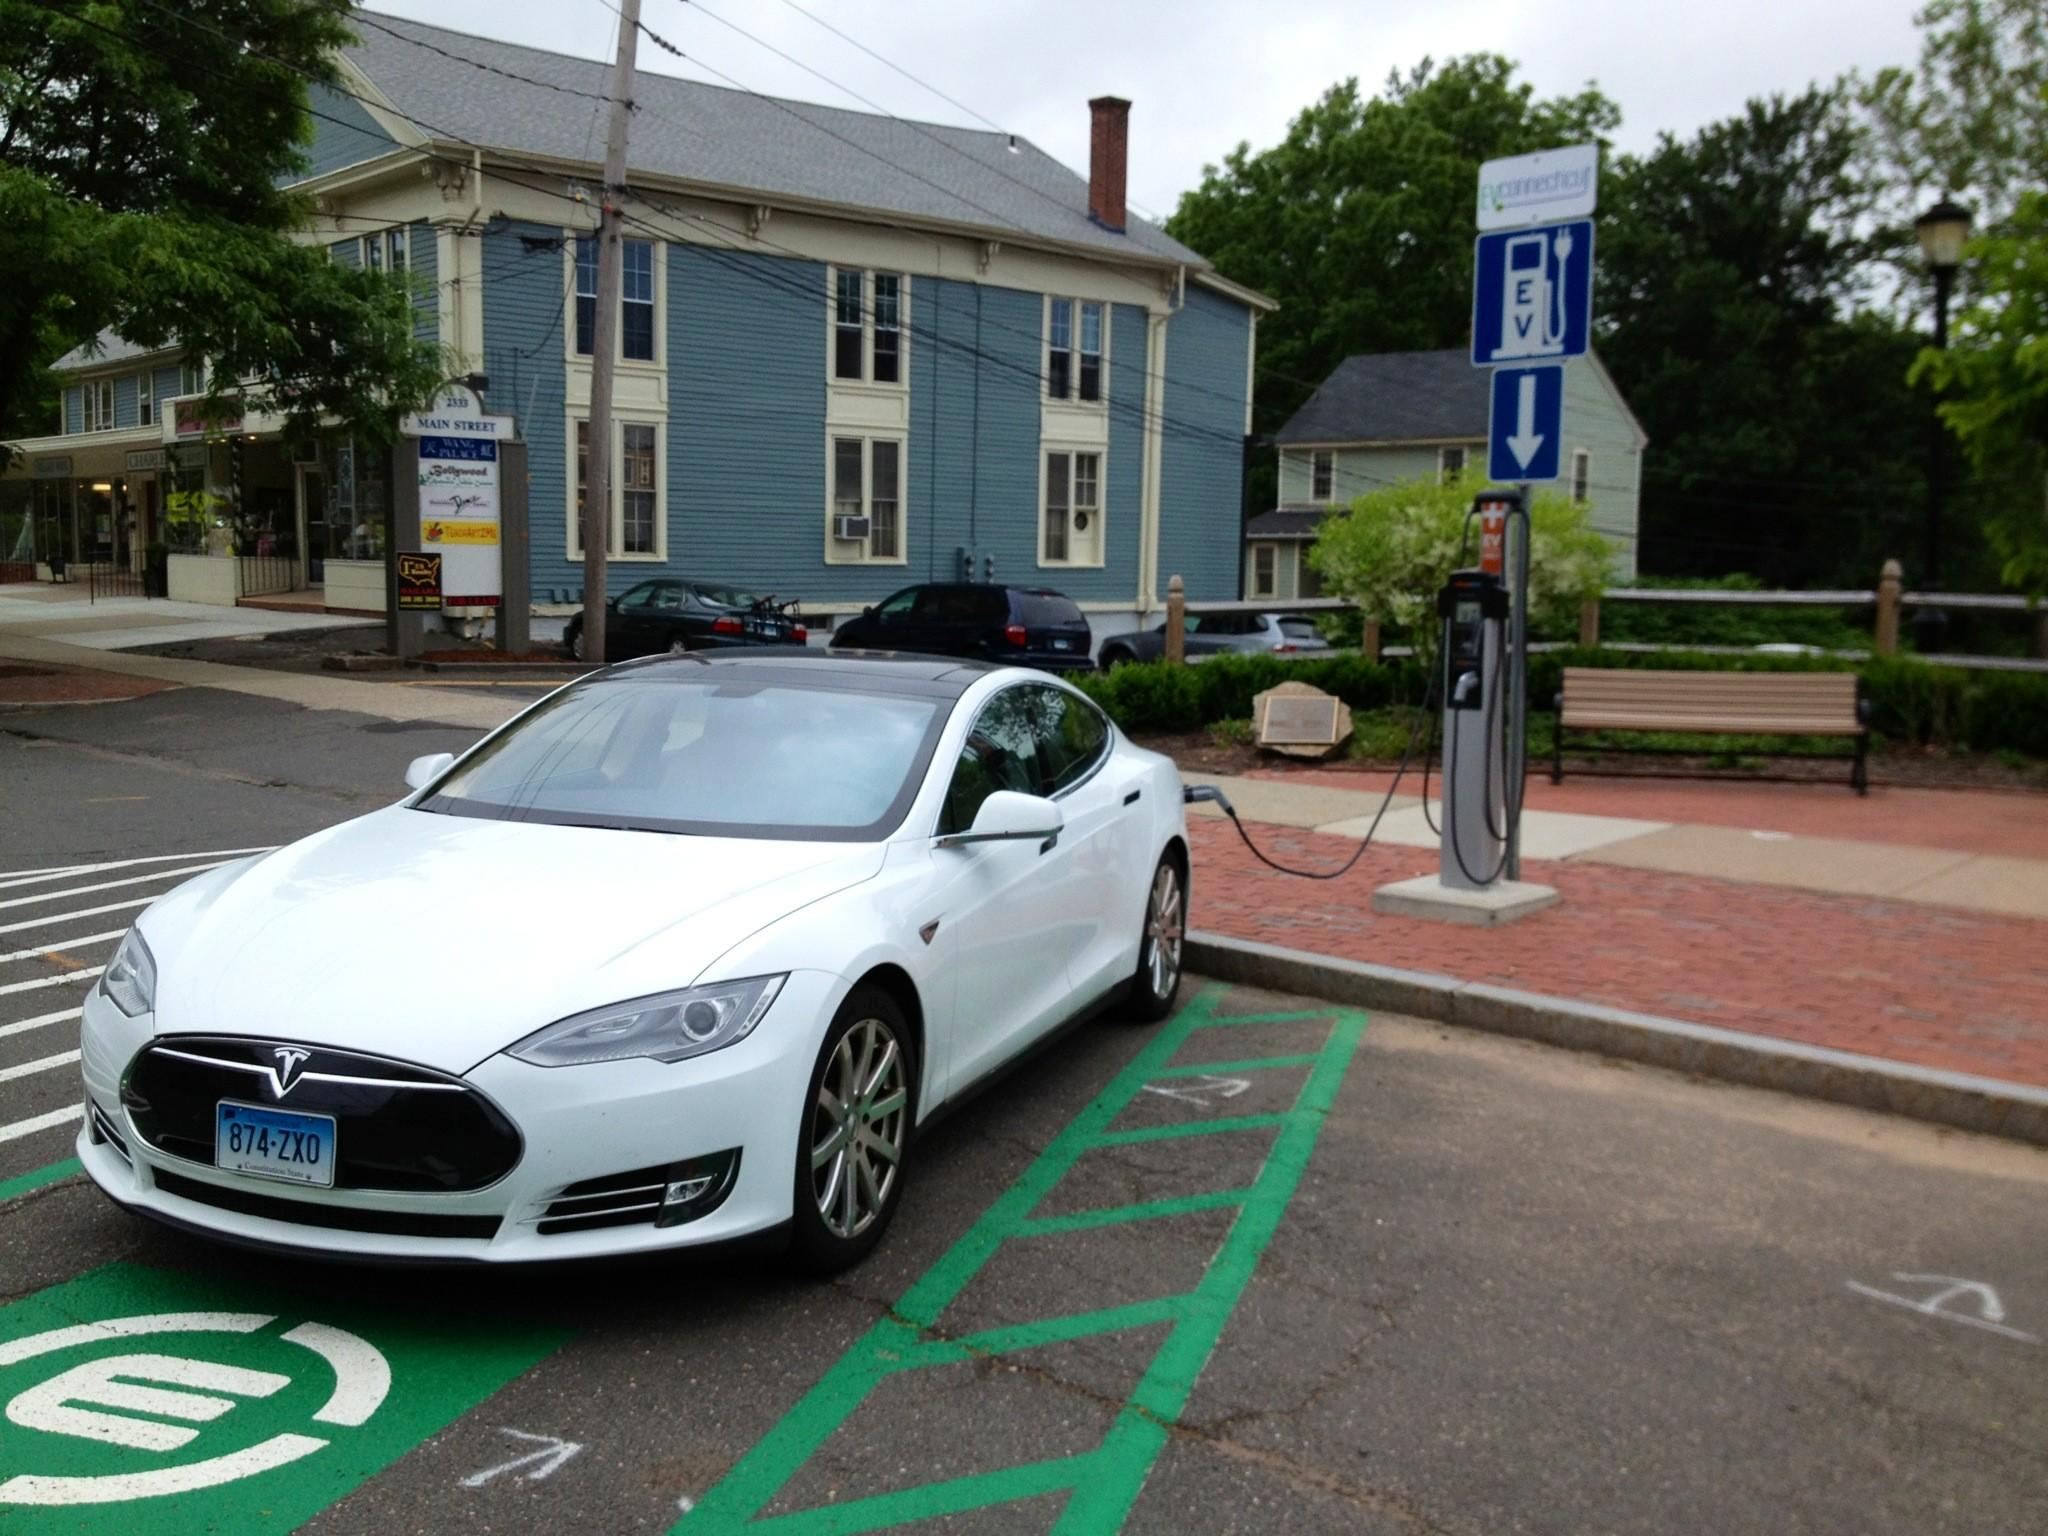 An electric car owner takes advantage of the electric charging station recently installed along Main Street.